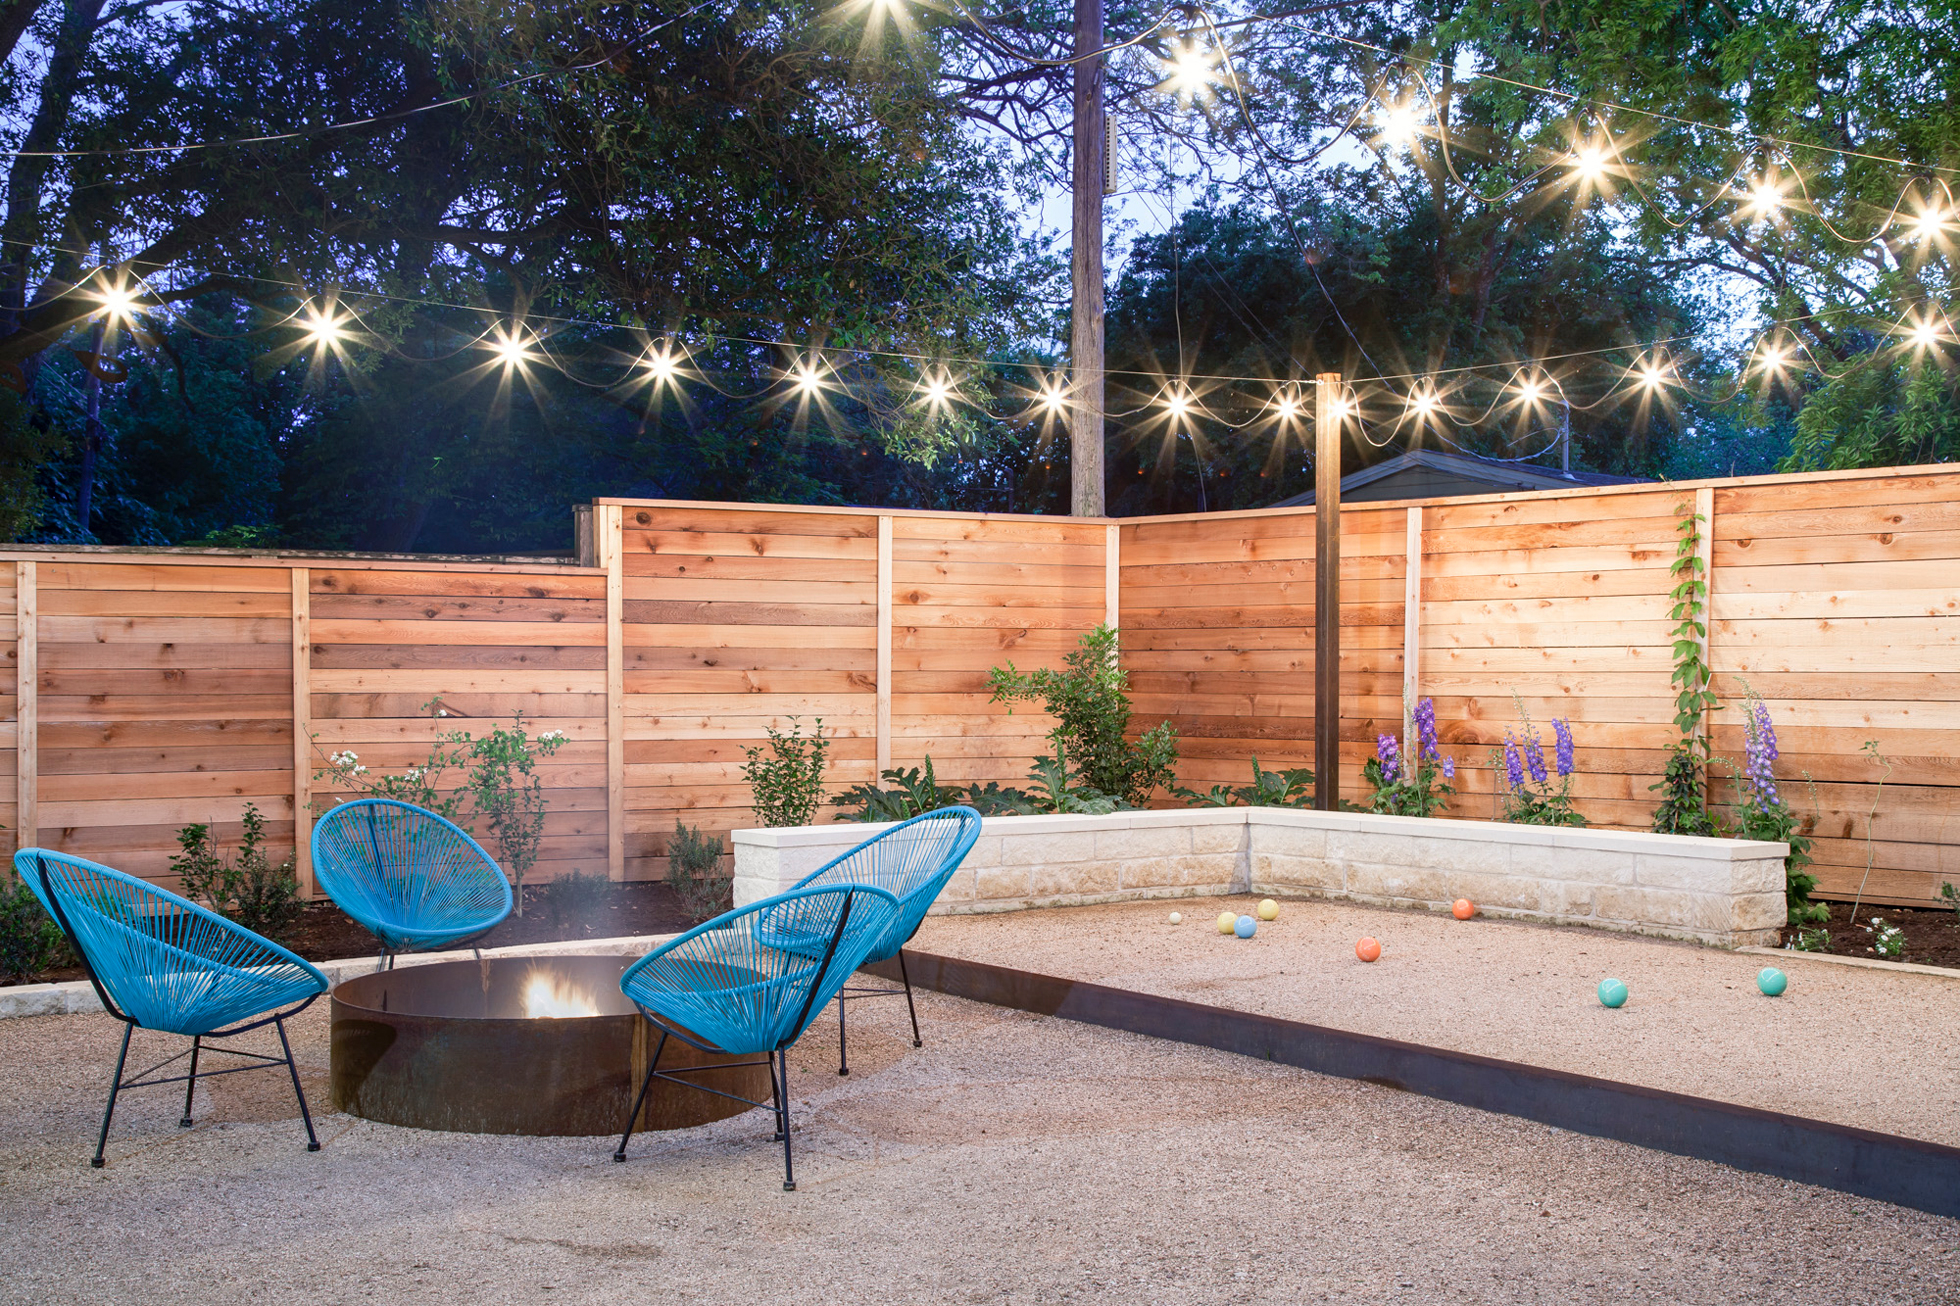 Backyard with firepit and bocce ball court